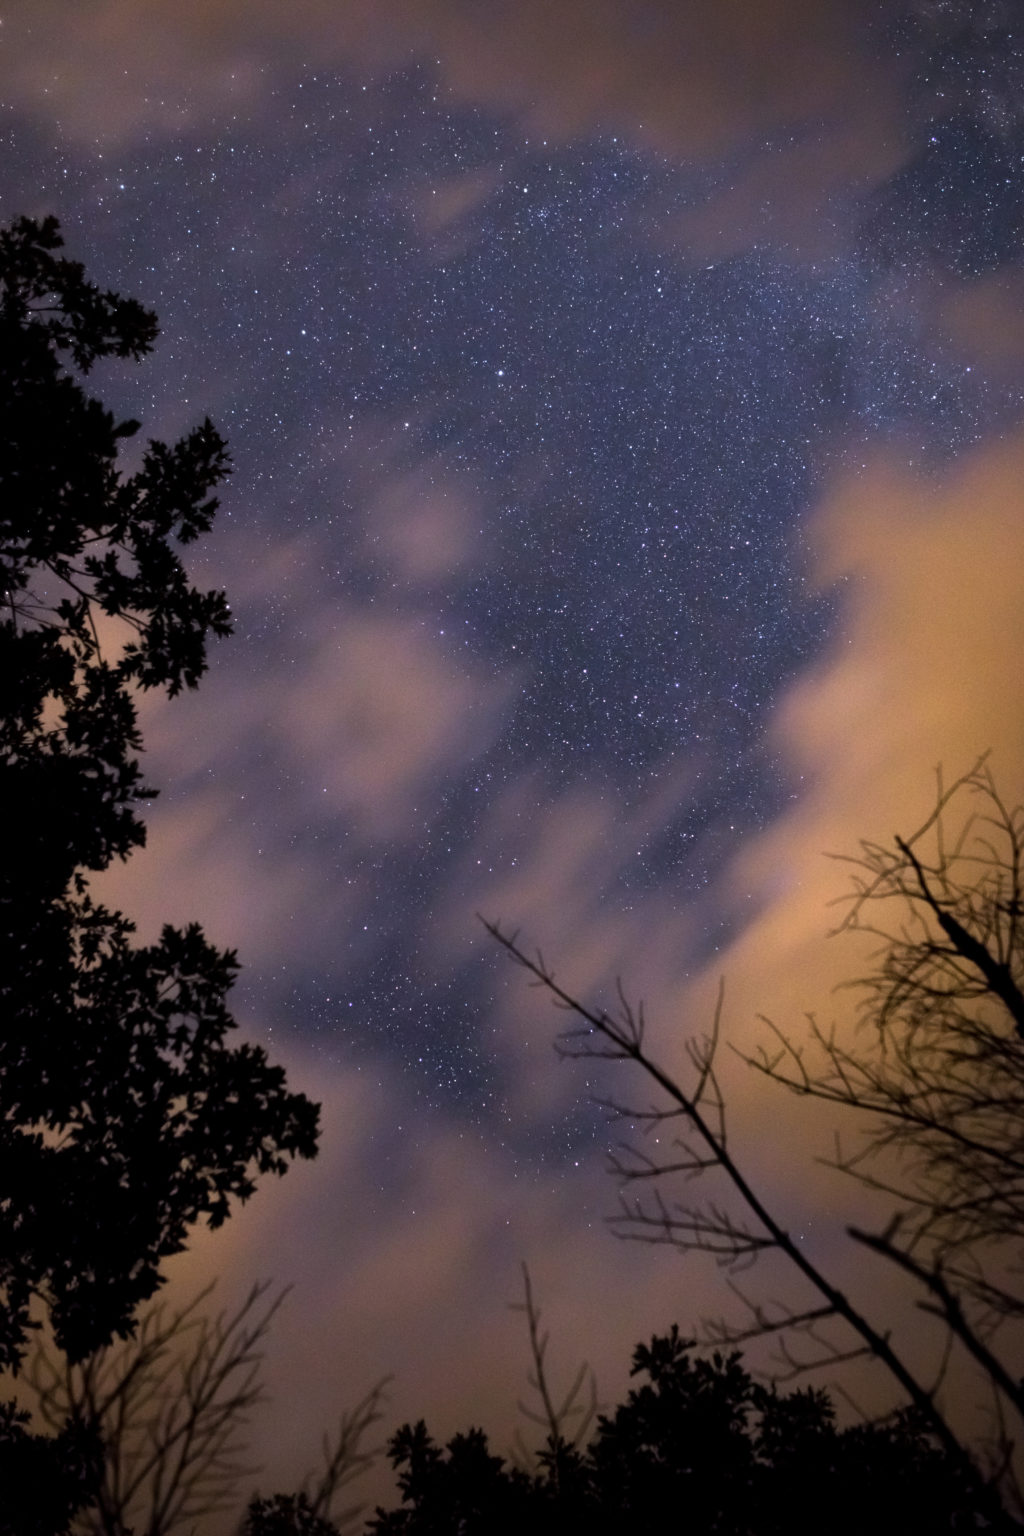 Blurry Clouds Moving Across Night Sky